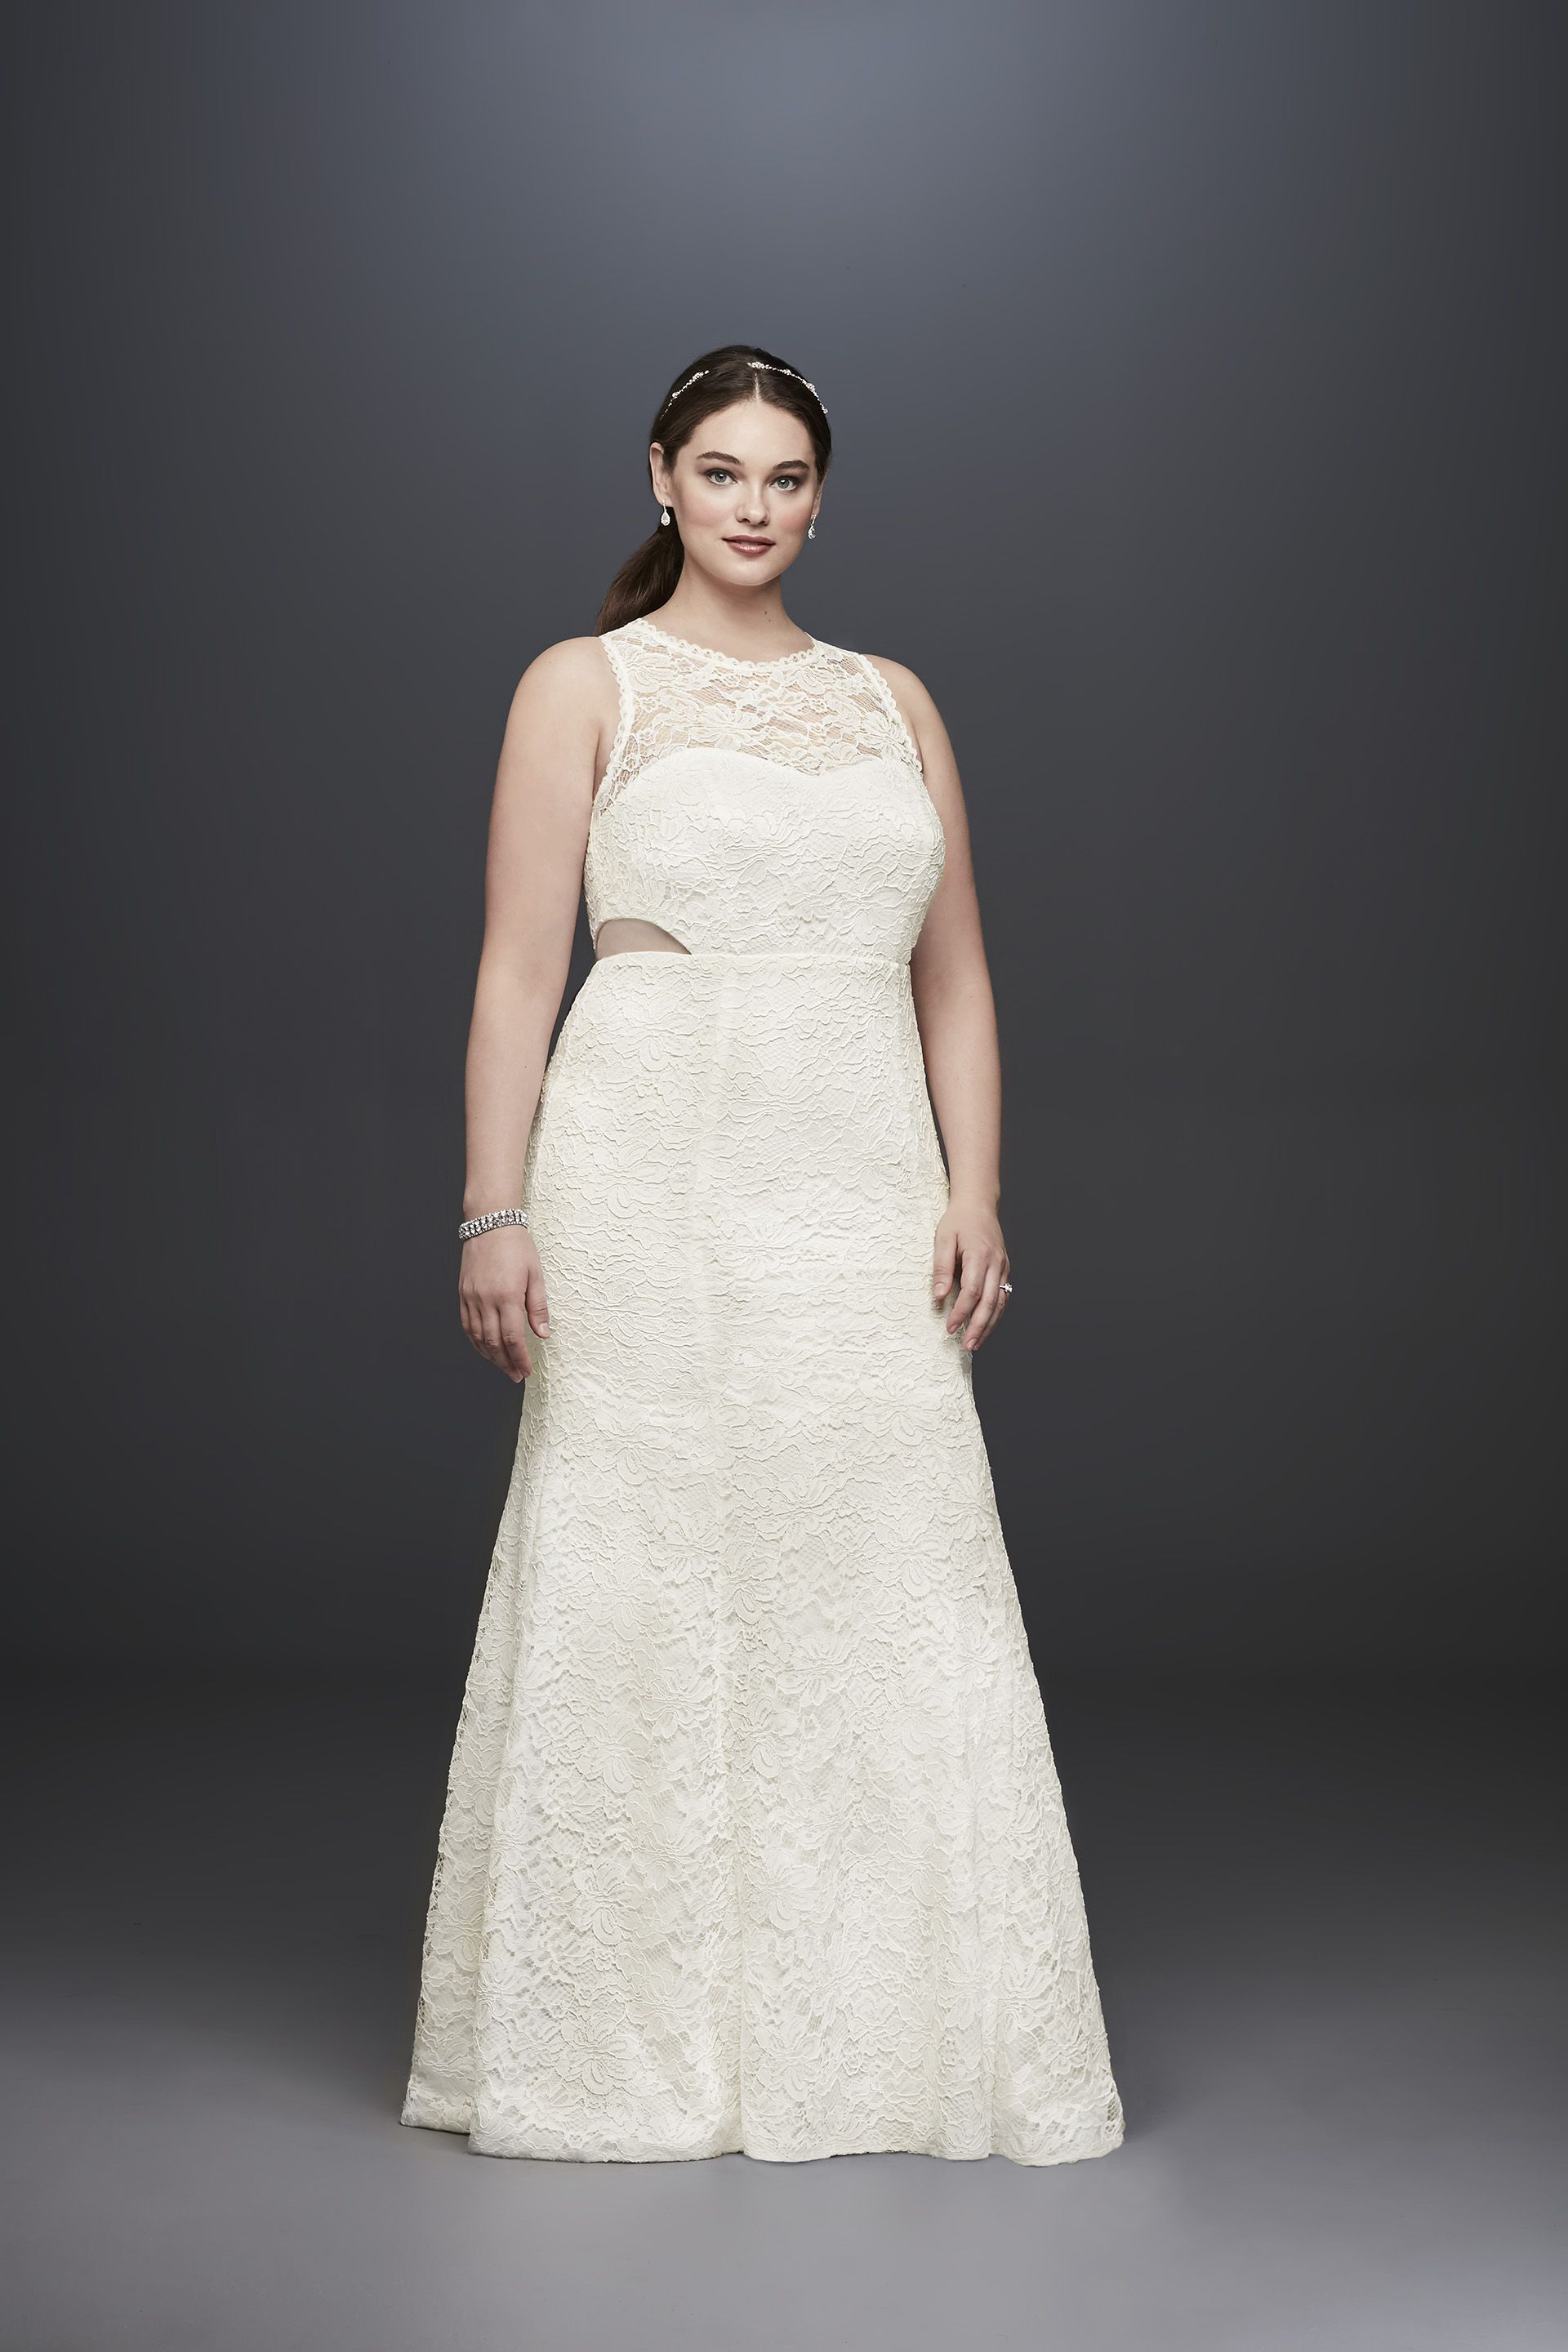 Casual wedding dresses under 300 you wont believe